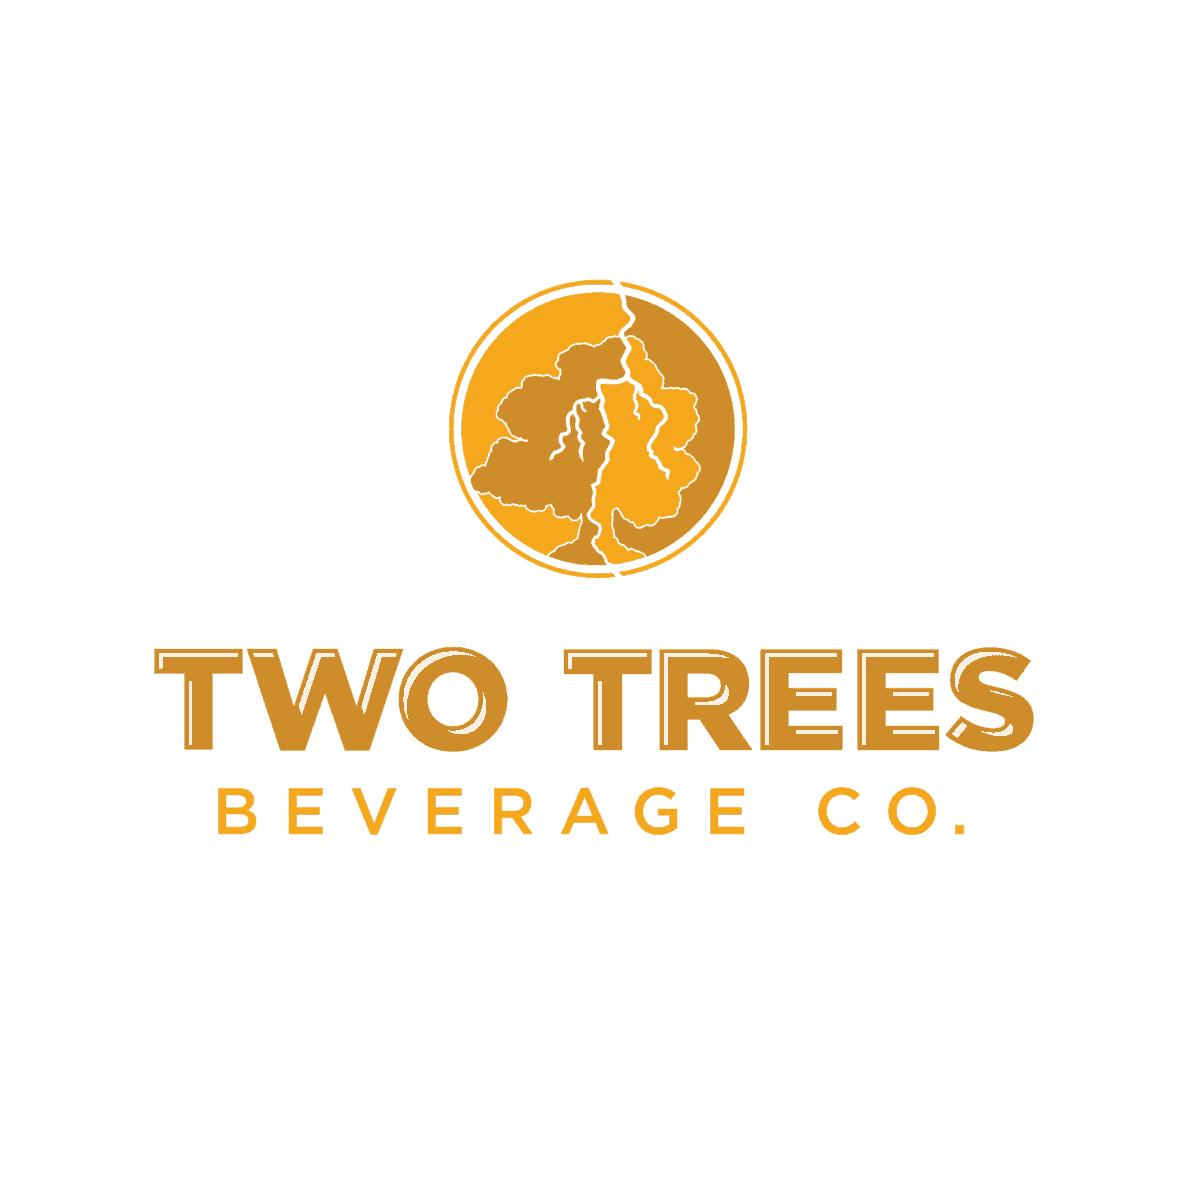 Two Trees Beverage Co.